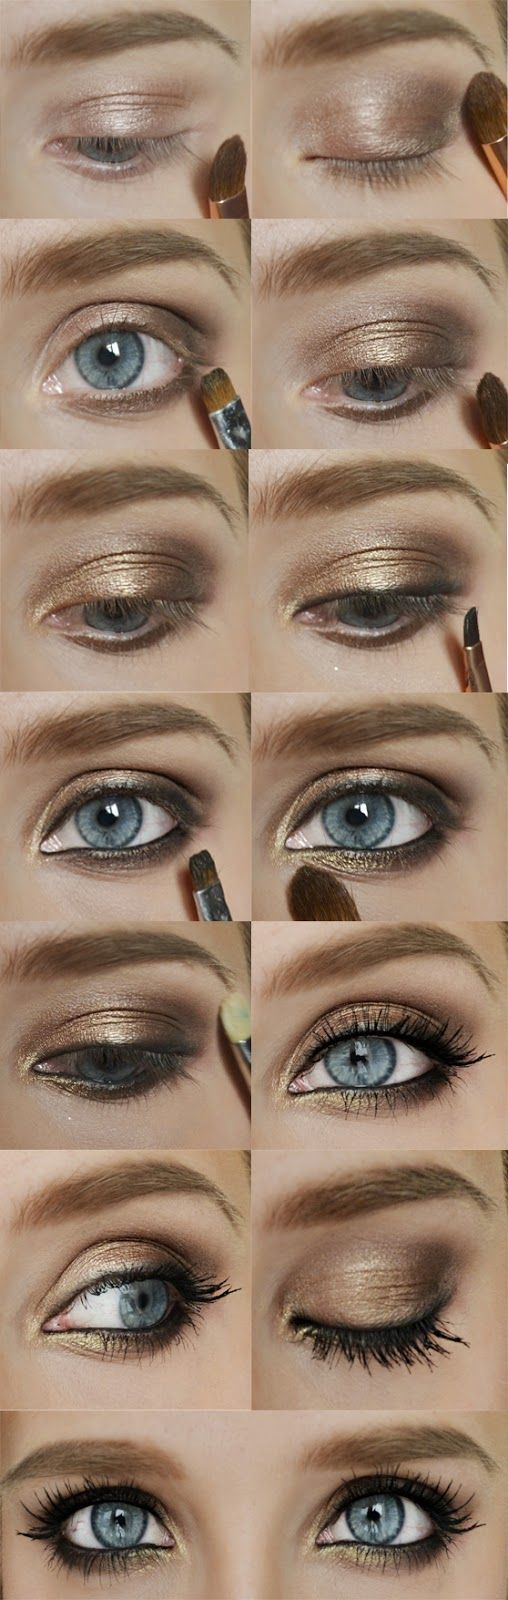 Ok, if you think that this look will take you for ages I can assure you ... yes it will. It's aaaall about blending and building the colou...